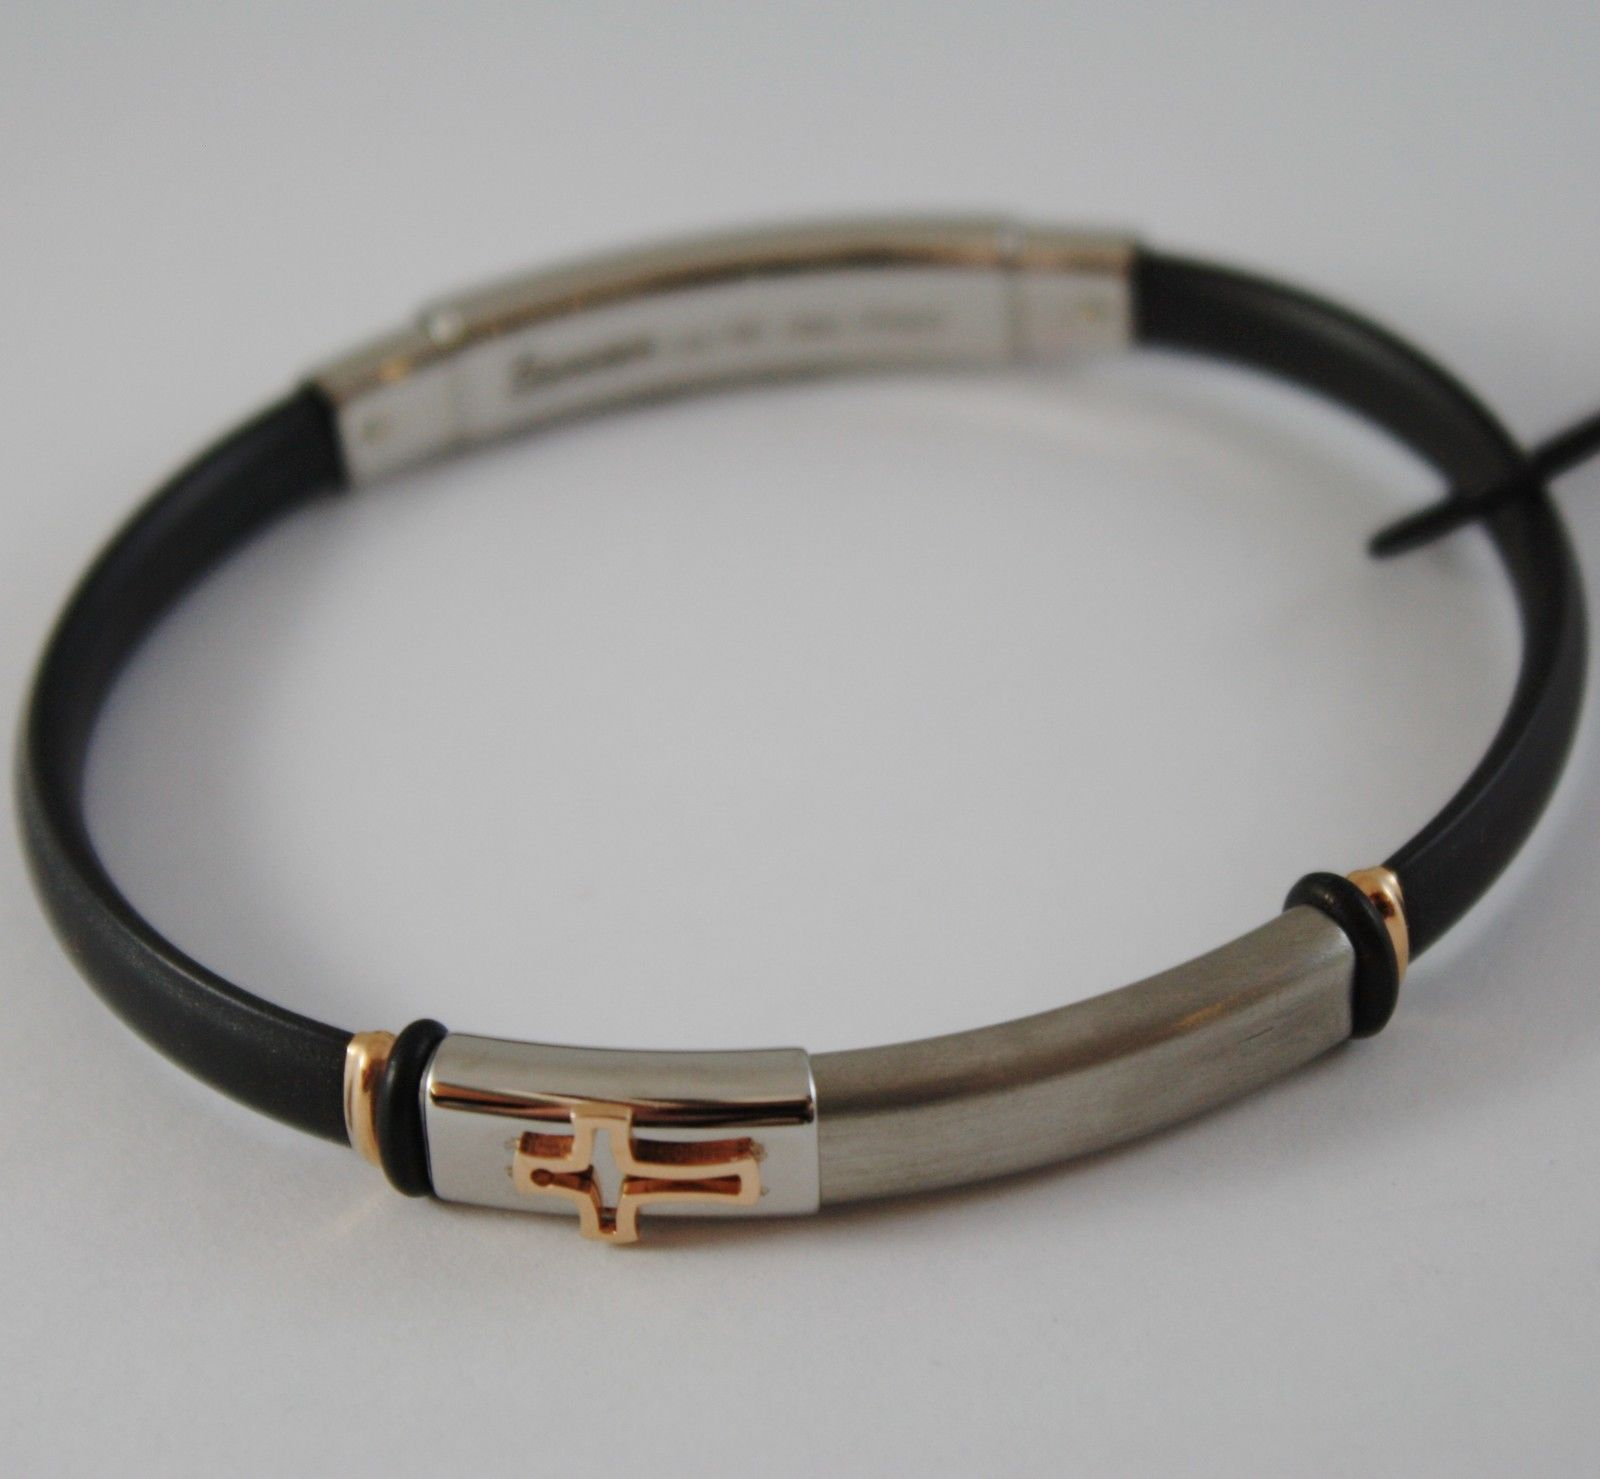 18K ROSE GOLD, STEEL, BLACK SILICON AND CROSS BRACELET BY ZANCAN MADE IN ITALY